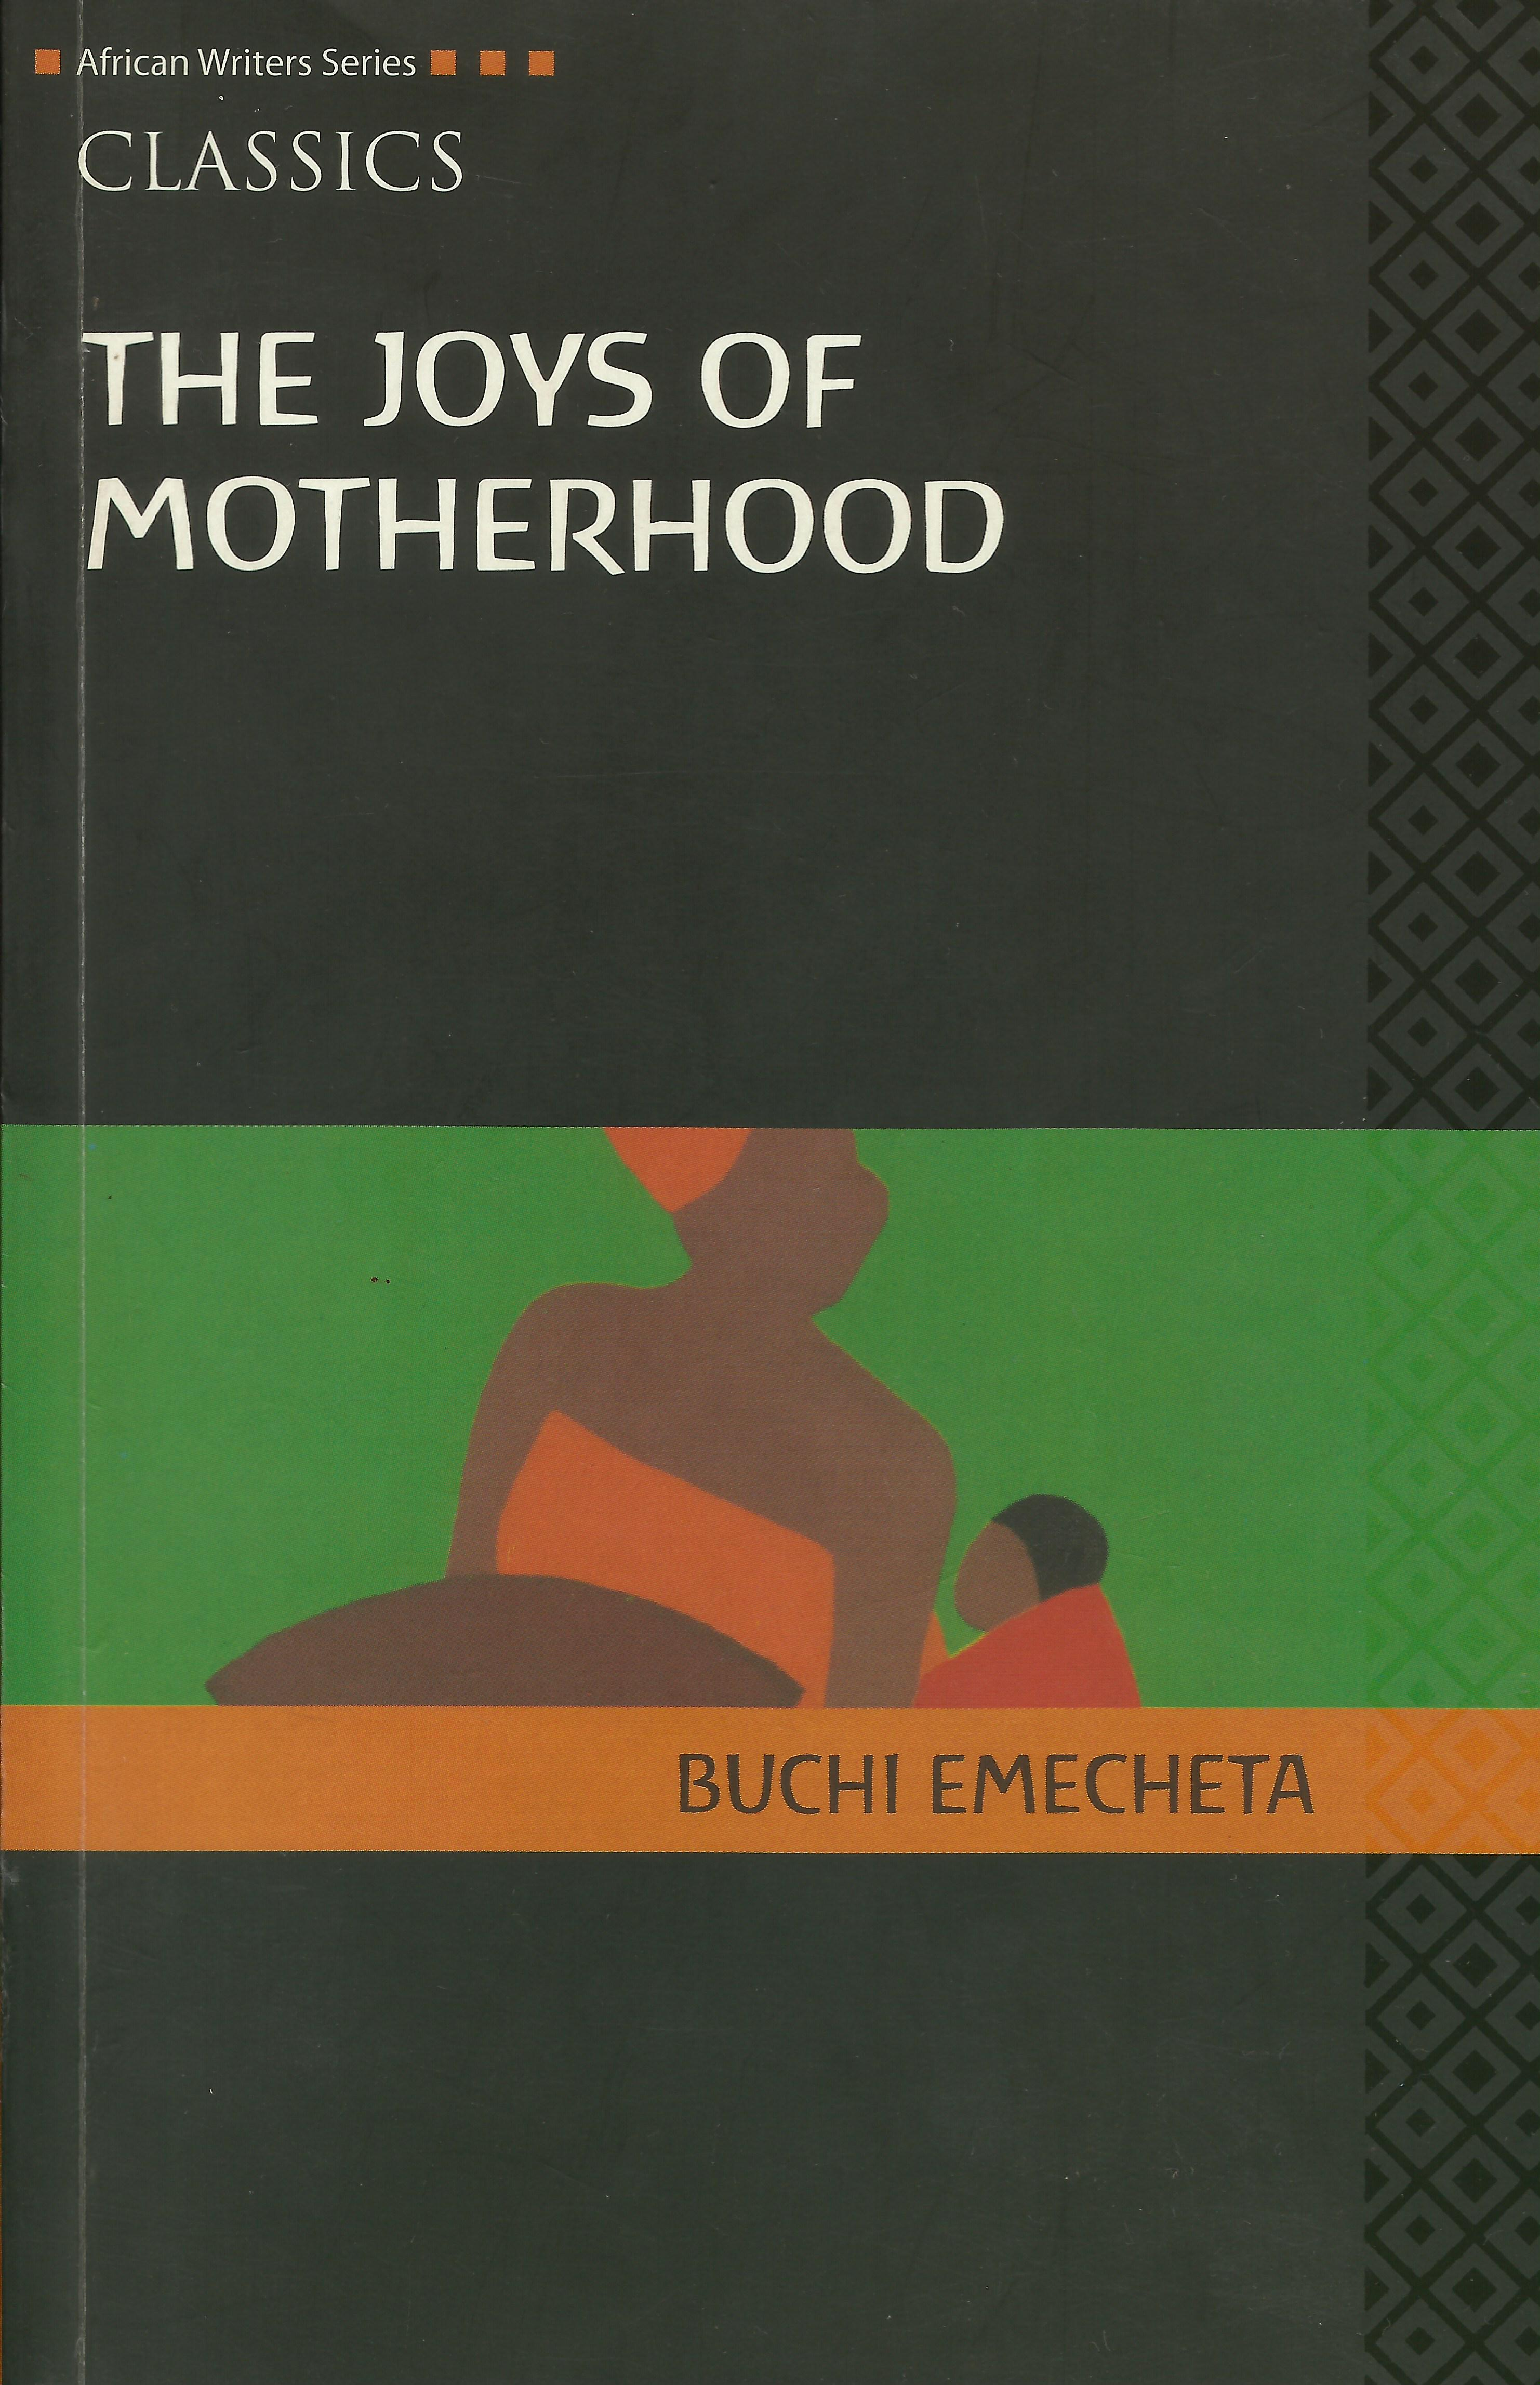 the joys of motherhood buchi emecheta Unlike most editing & proofreading services, we edit for everything: grammar, spelling, punctuation, idea flow, sentence structure, & more get started now.